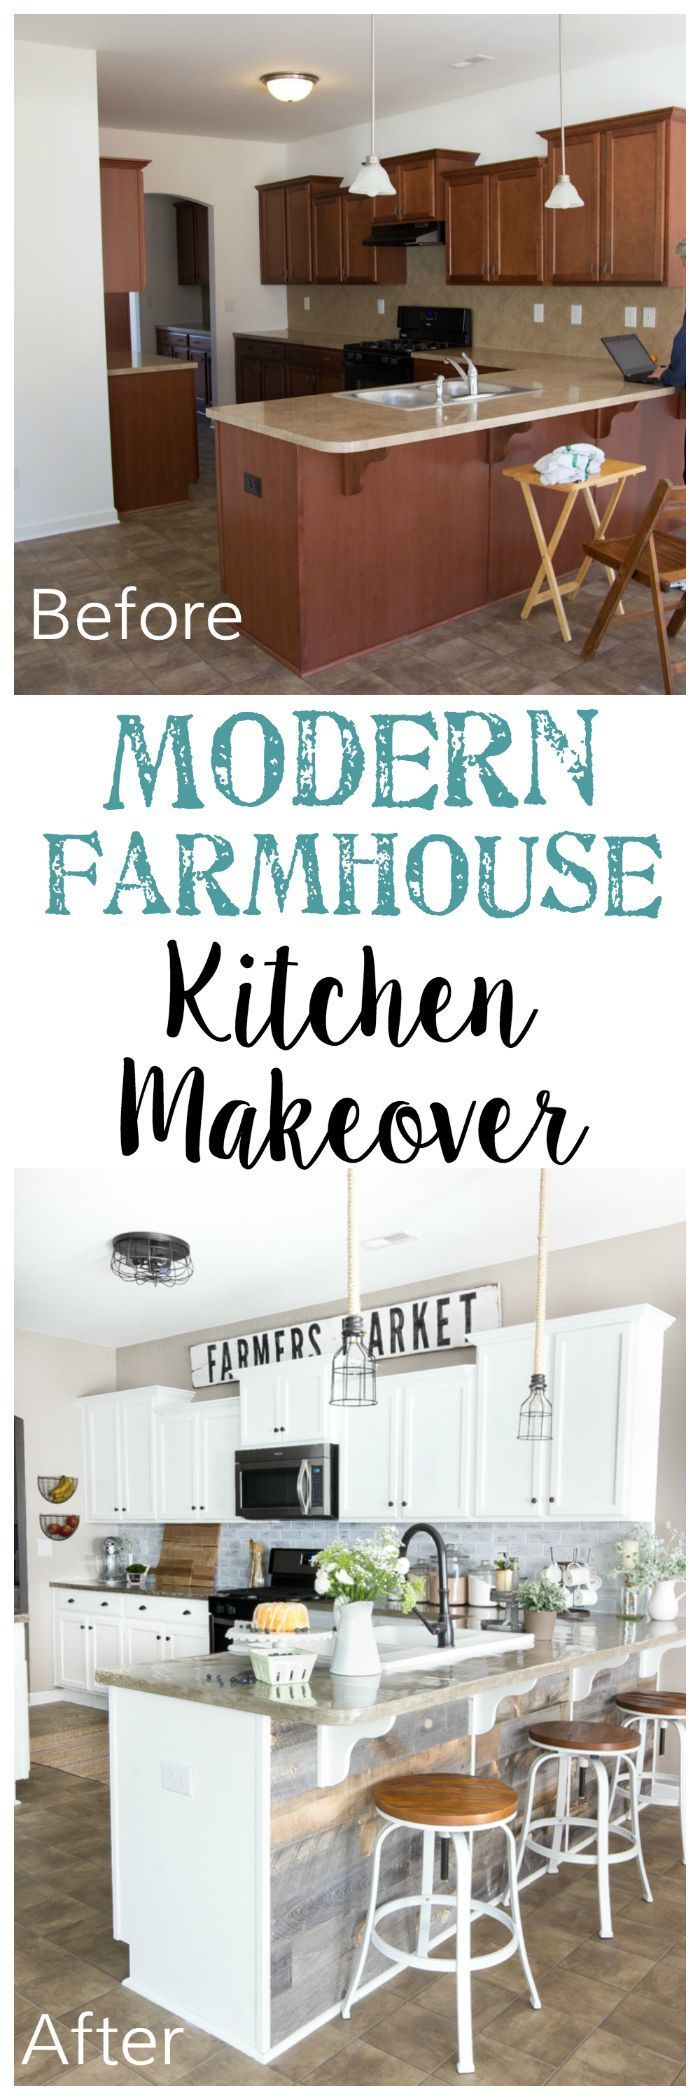 Modern Farmhouse Kitchen Makeover Reveal | http://blesserhouse.com - So many budget-friendly DIY projects packed into one kitchen! - Popular Pins